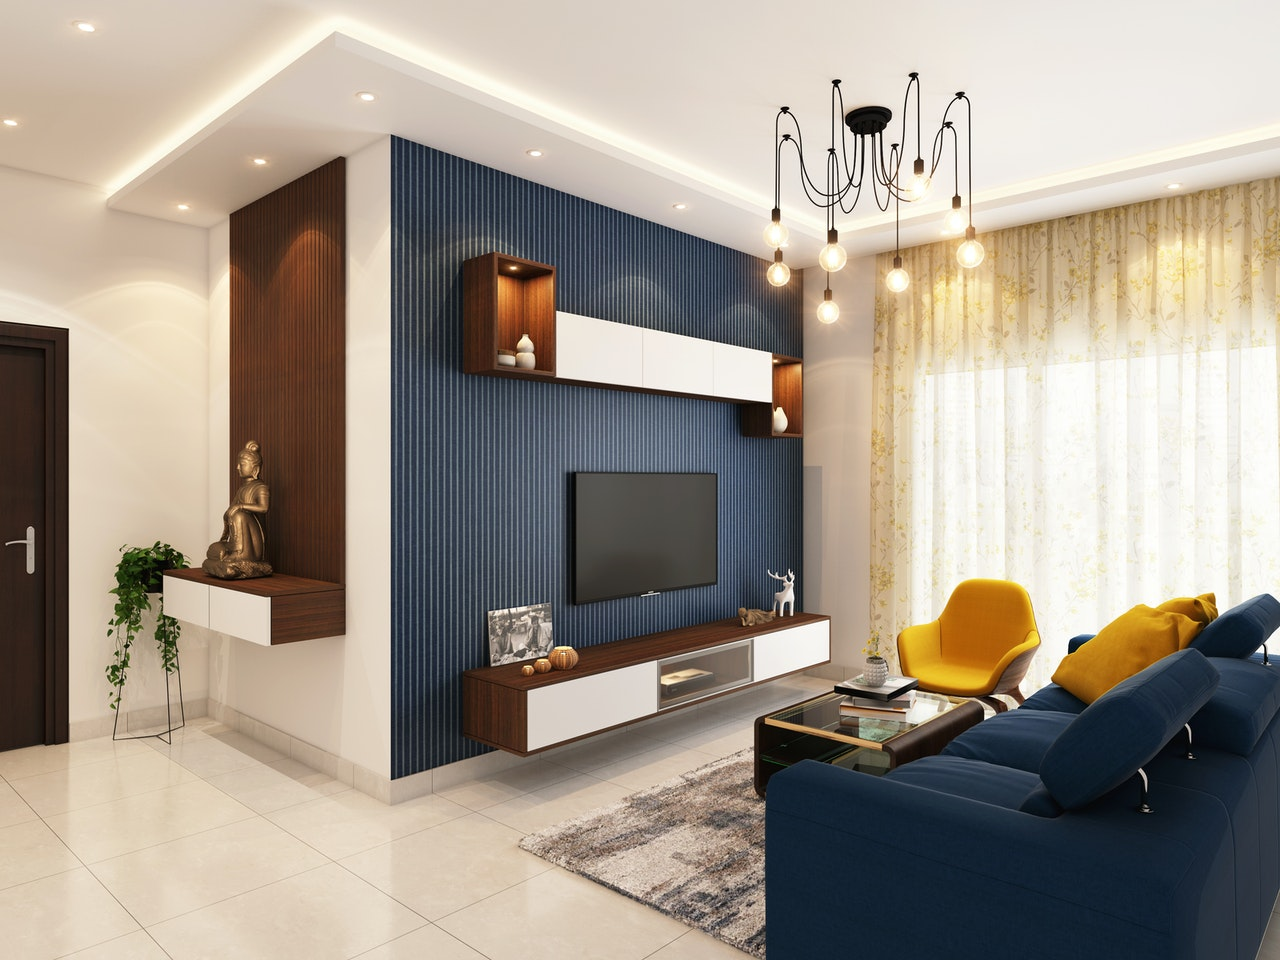 use of color in interior design of living room